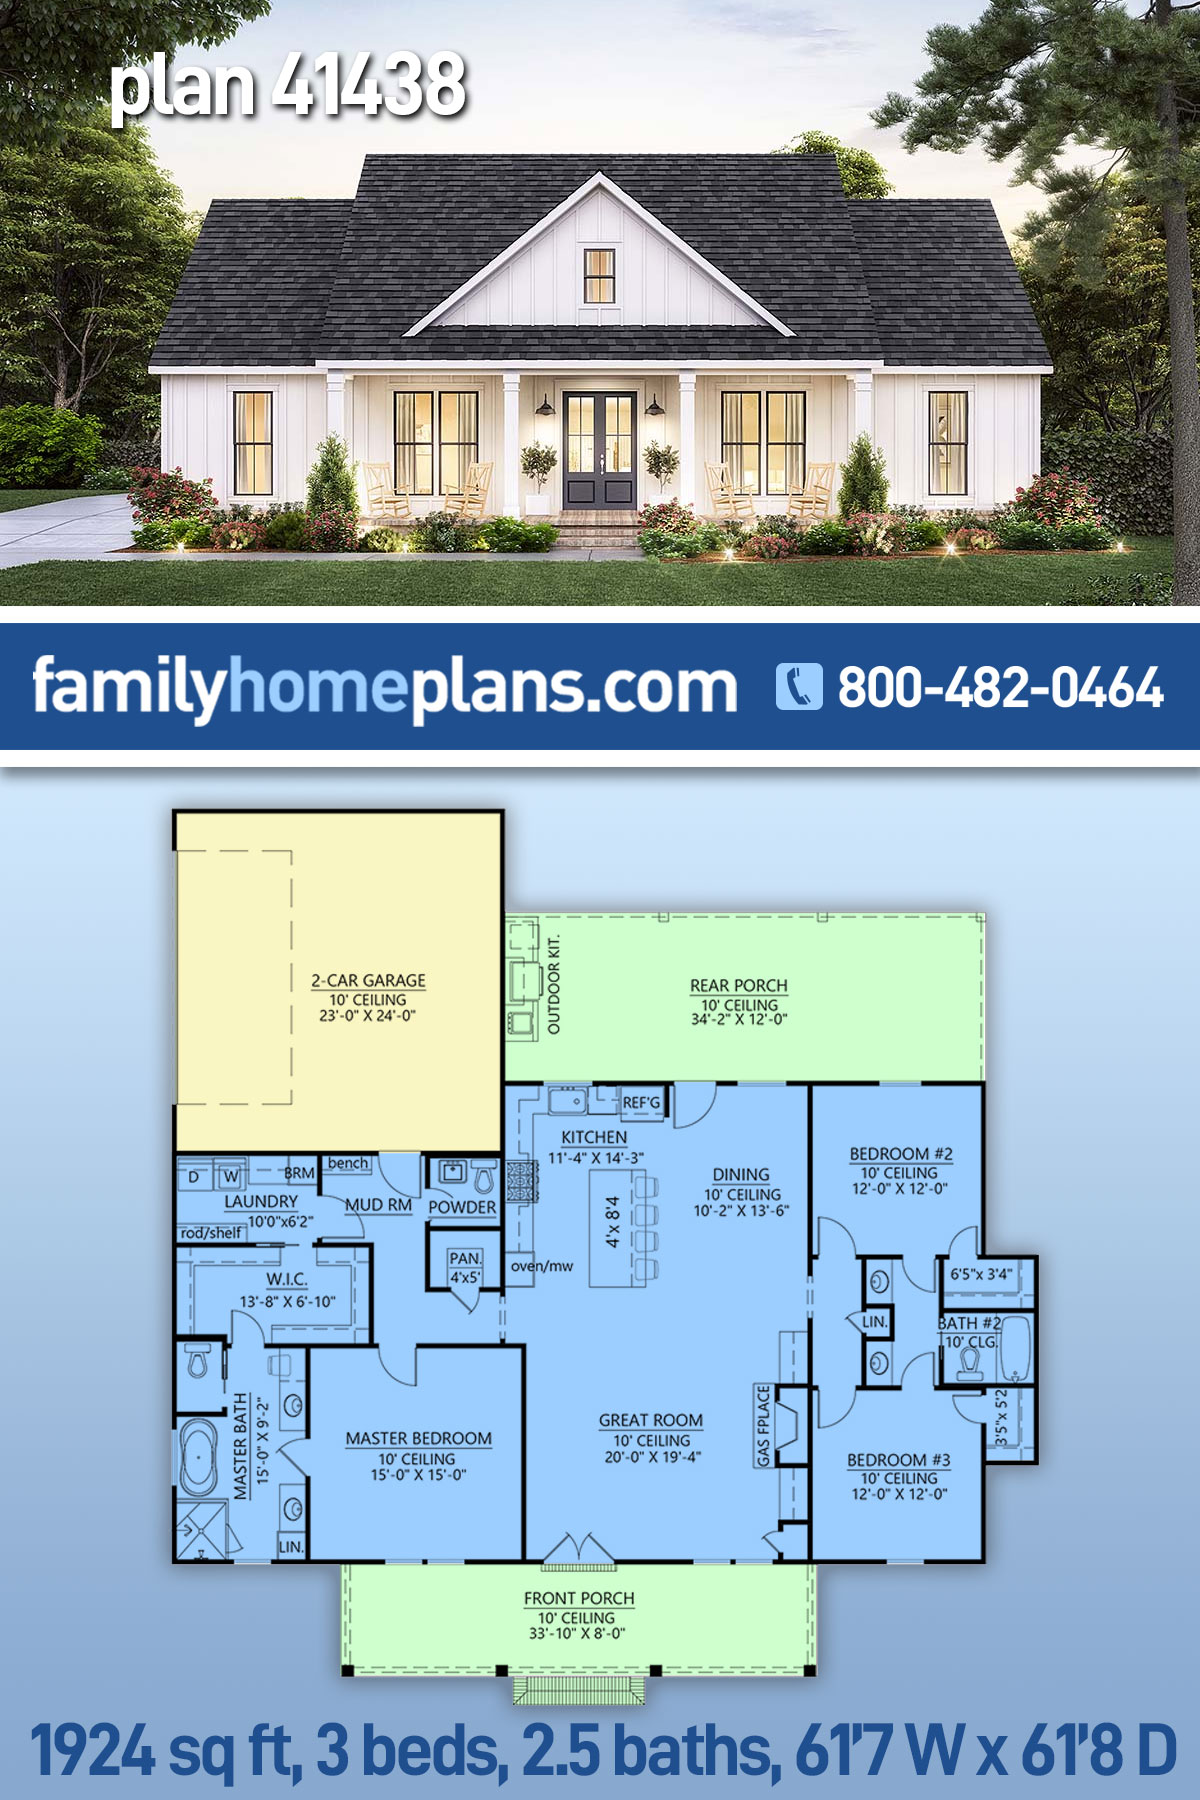 Country, Craftsman, Farmhouse House Plan 41438 with 3 Beds, 3 Baths, 2 Car Garage